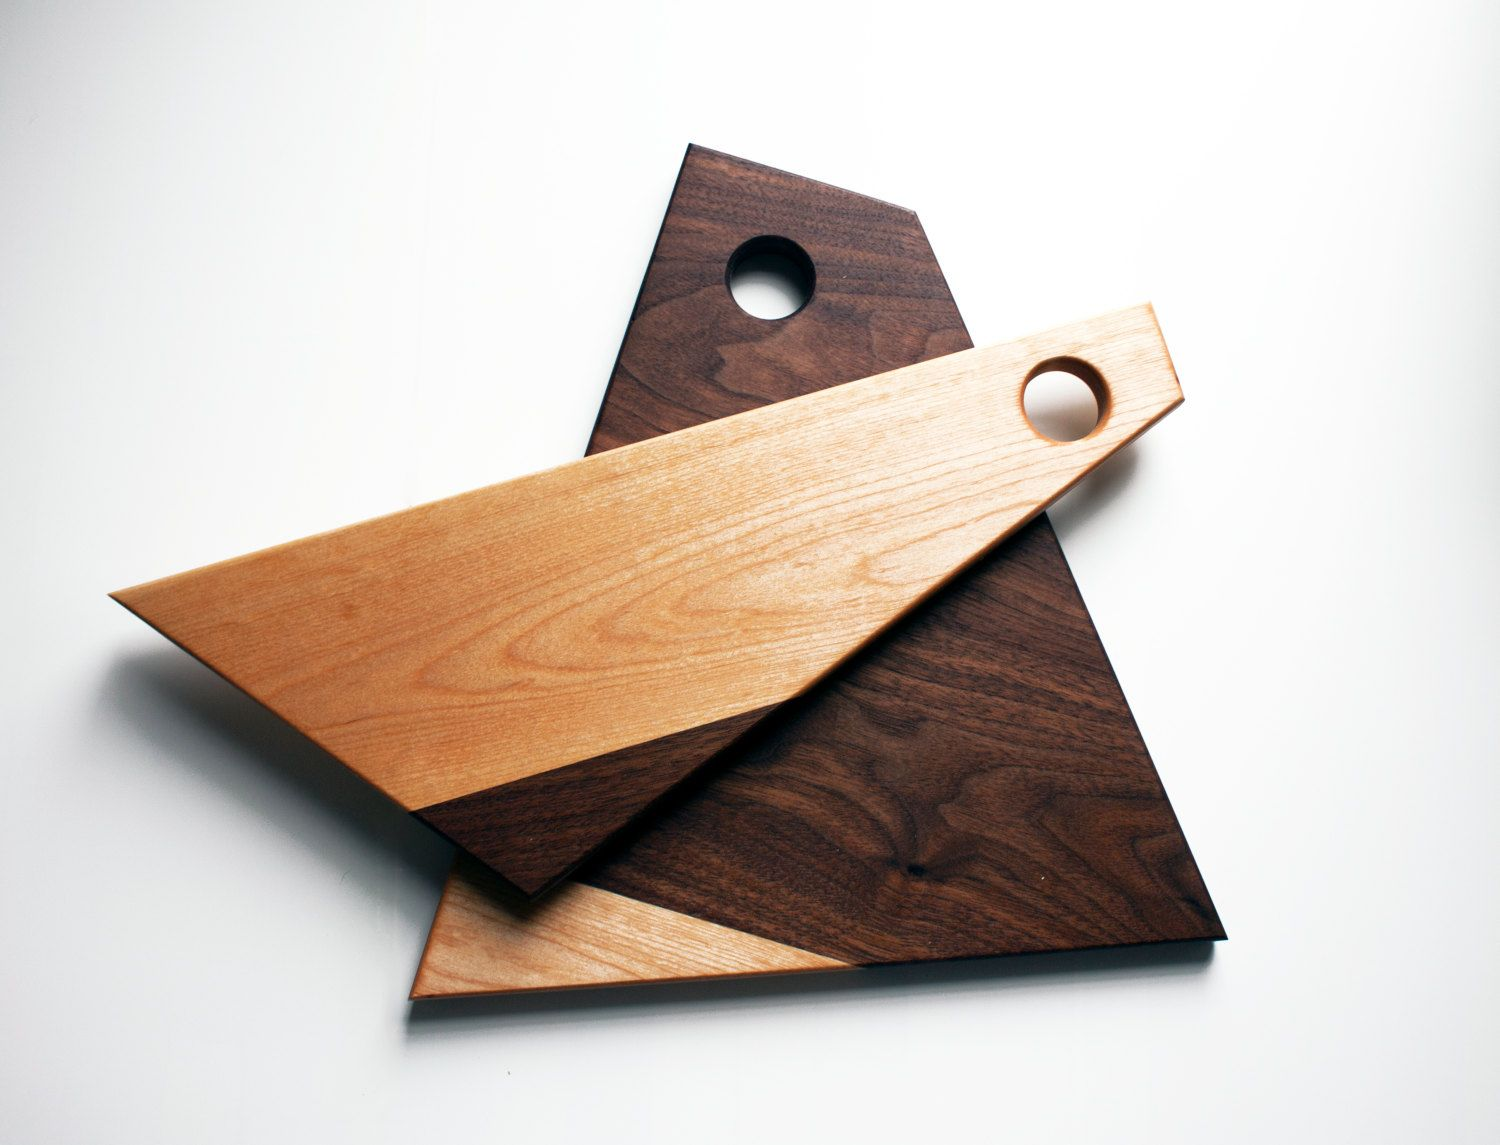 Charming 2 Piece Geometrical Cutting Board Set Made Out Of Solid